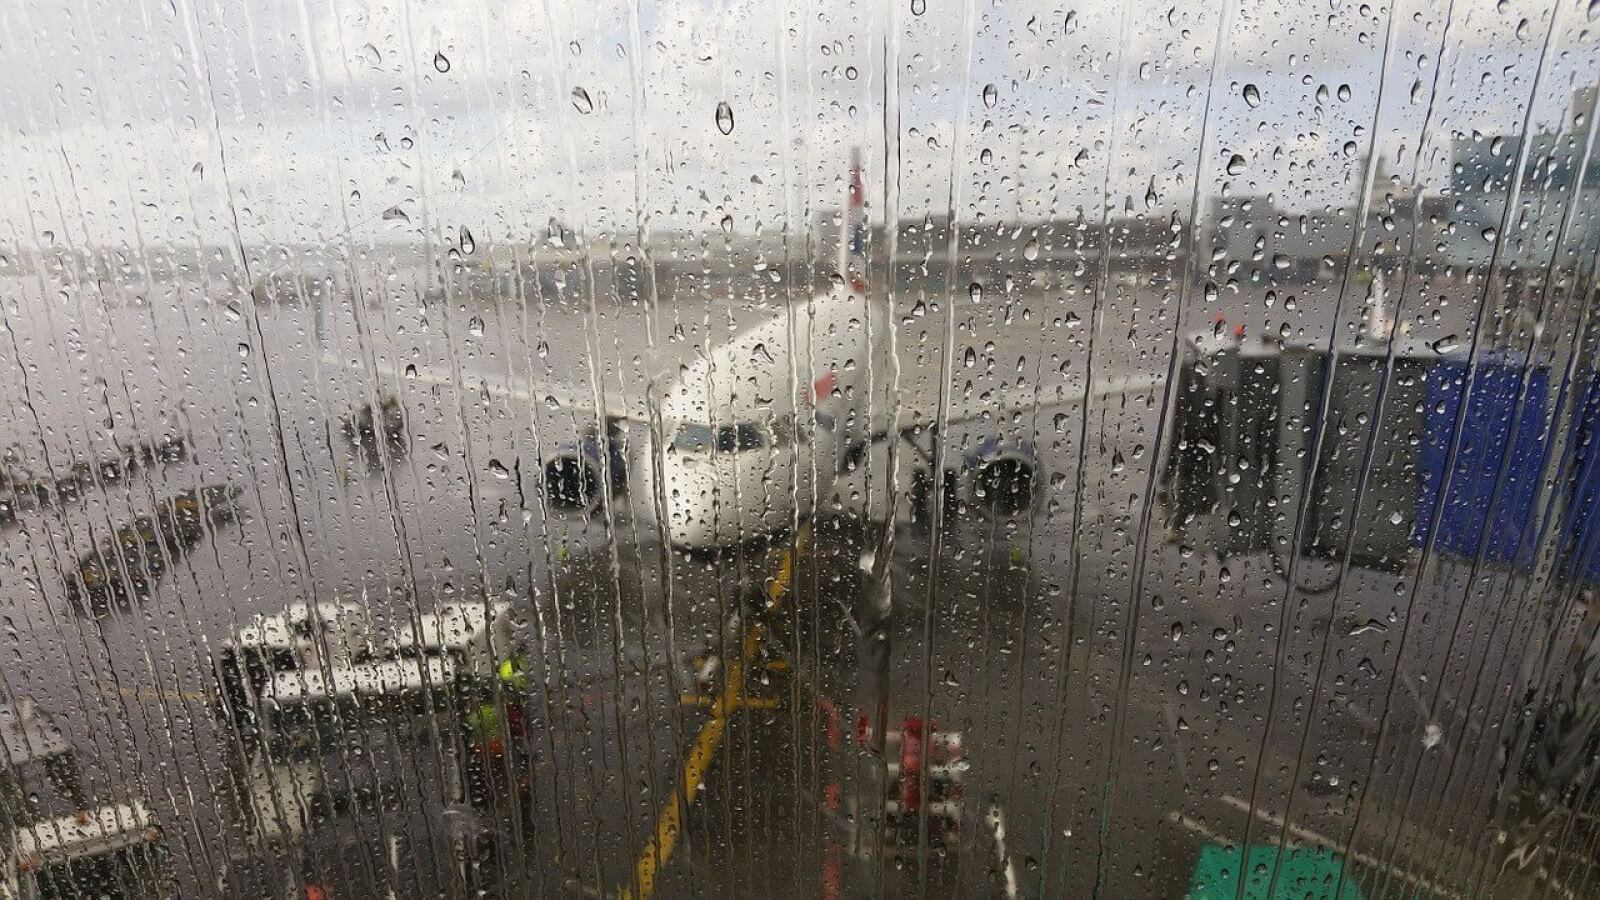 Rainy Airport Day